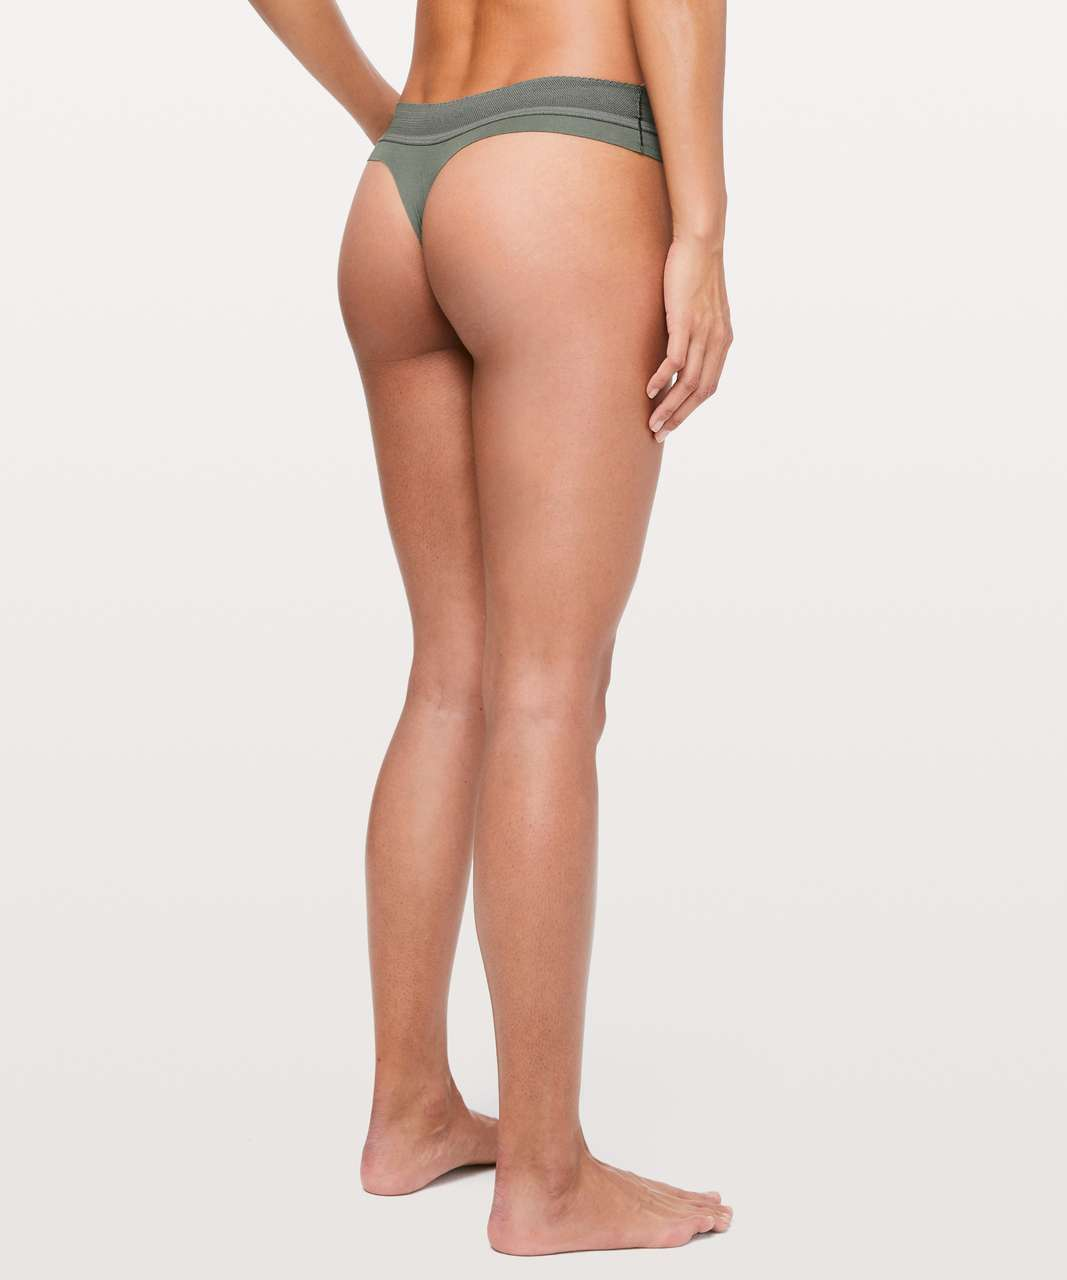 Lululemon Ever Essentials Thong - Grey Sage